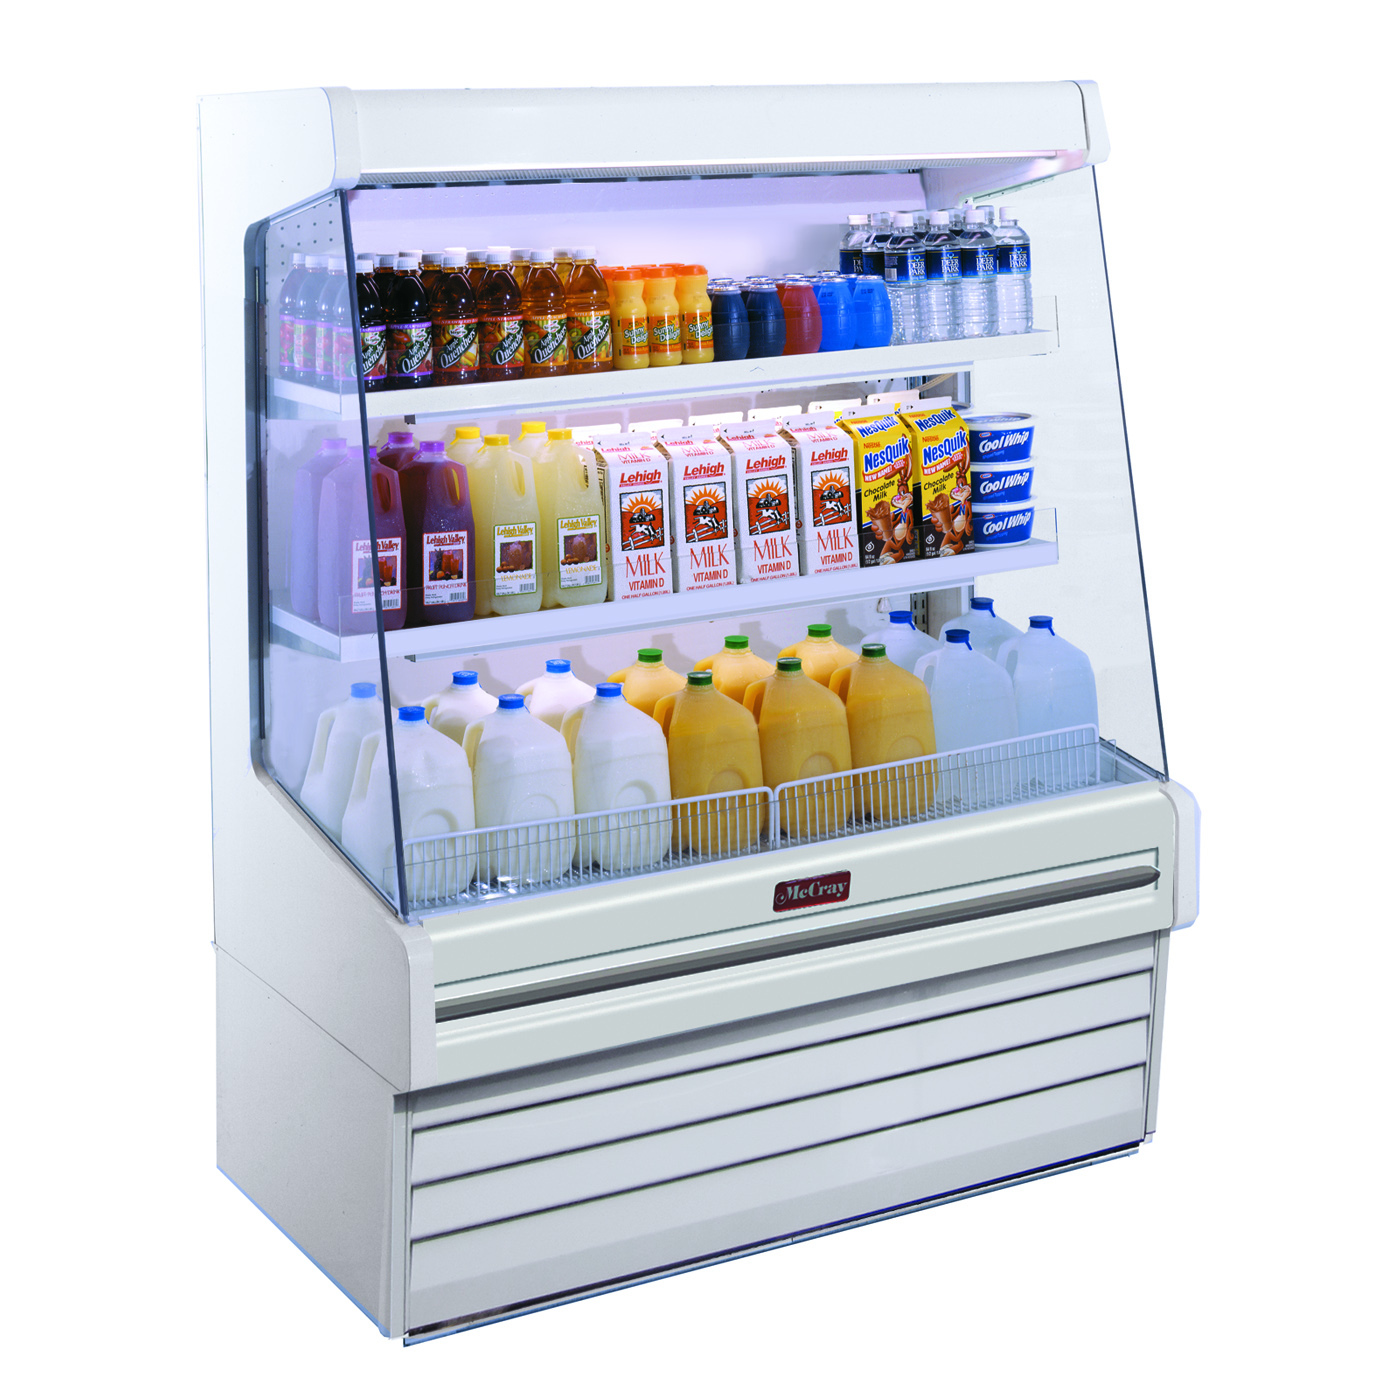 Howard-McCray R-OD30E-6L-S-LED merchandiser, open refrigerated display